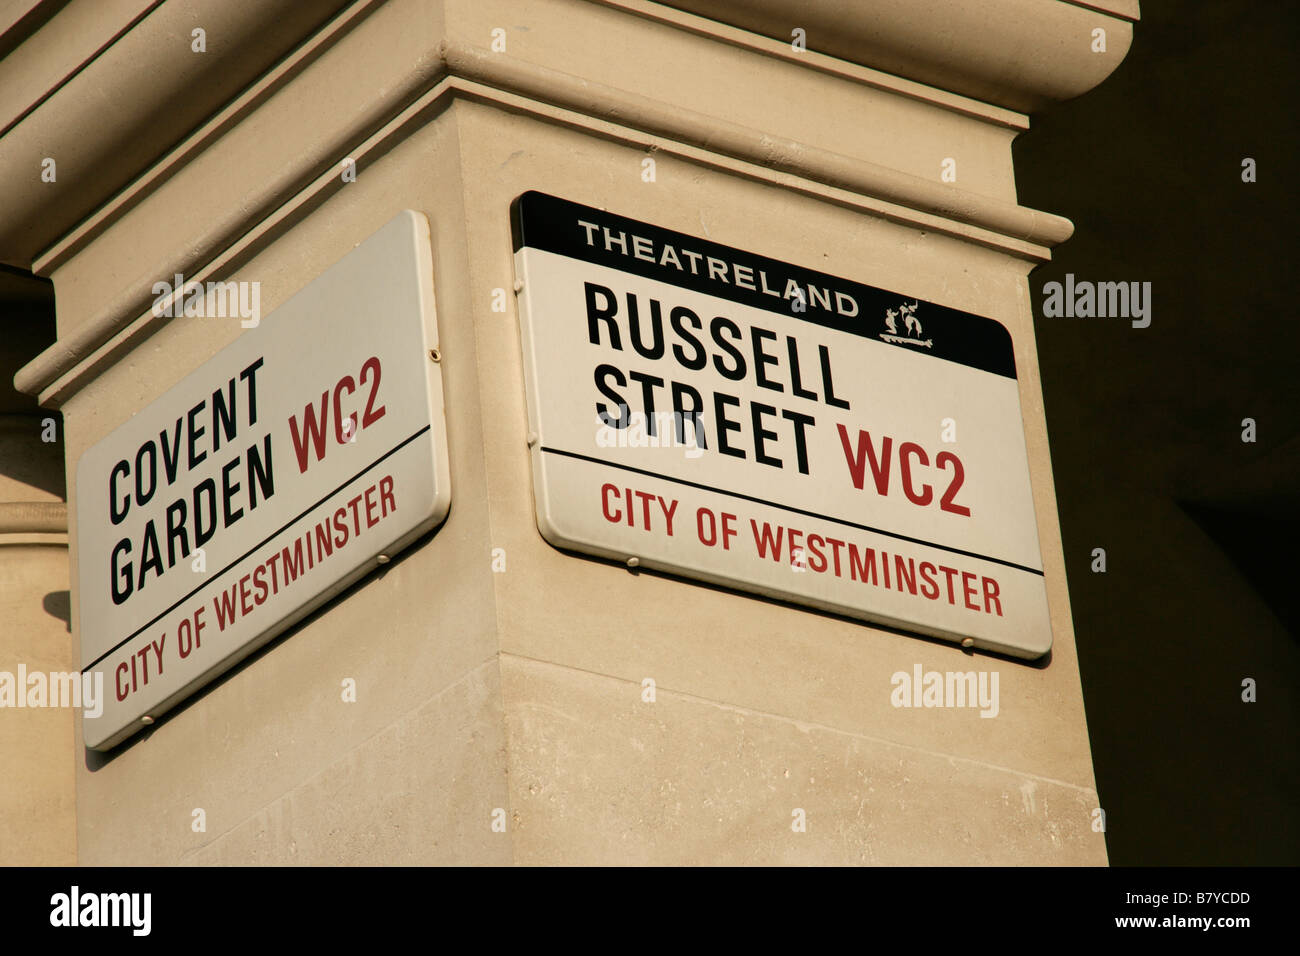 Covent Garden and Russell Street, WC2, London: street sign - Stock Image